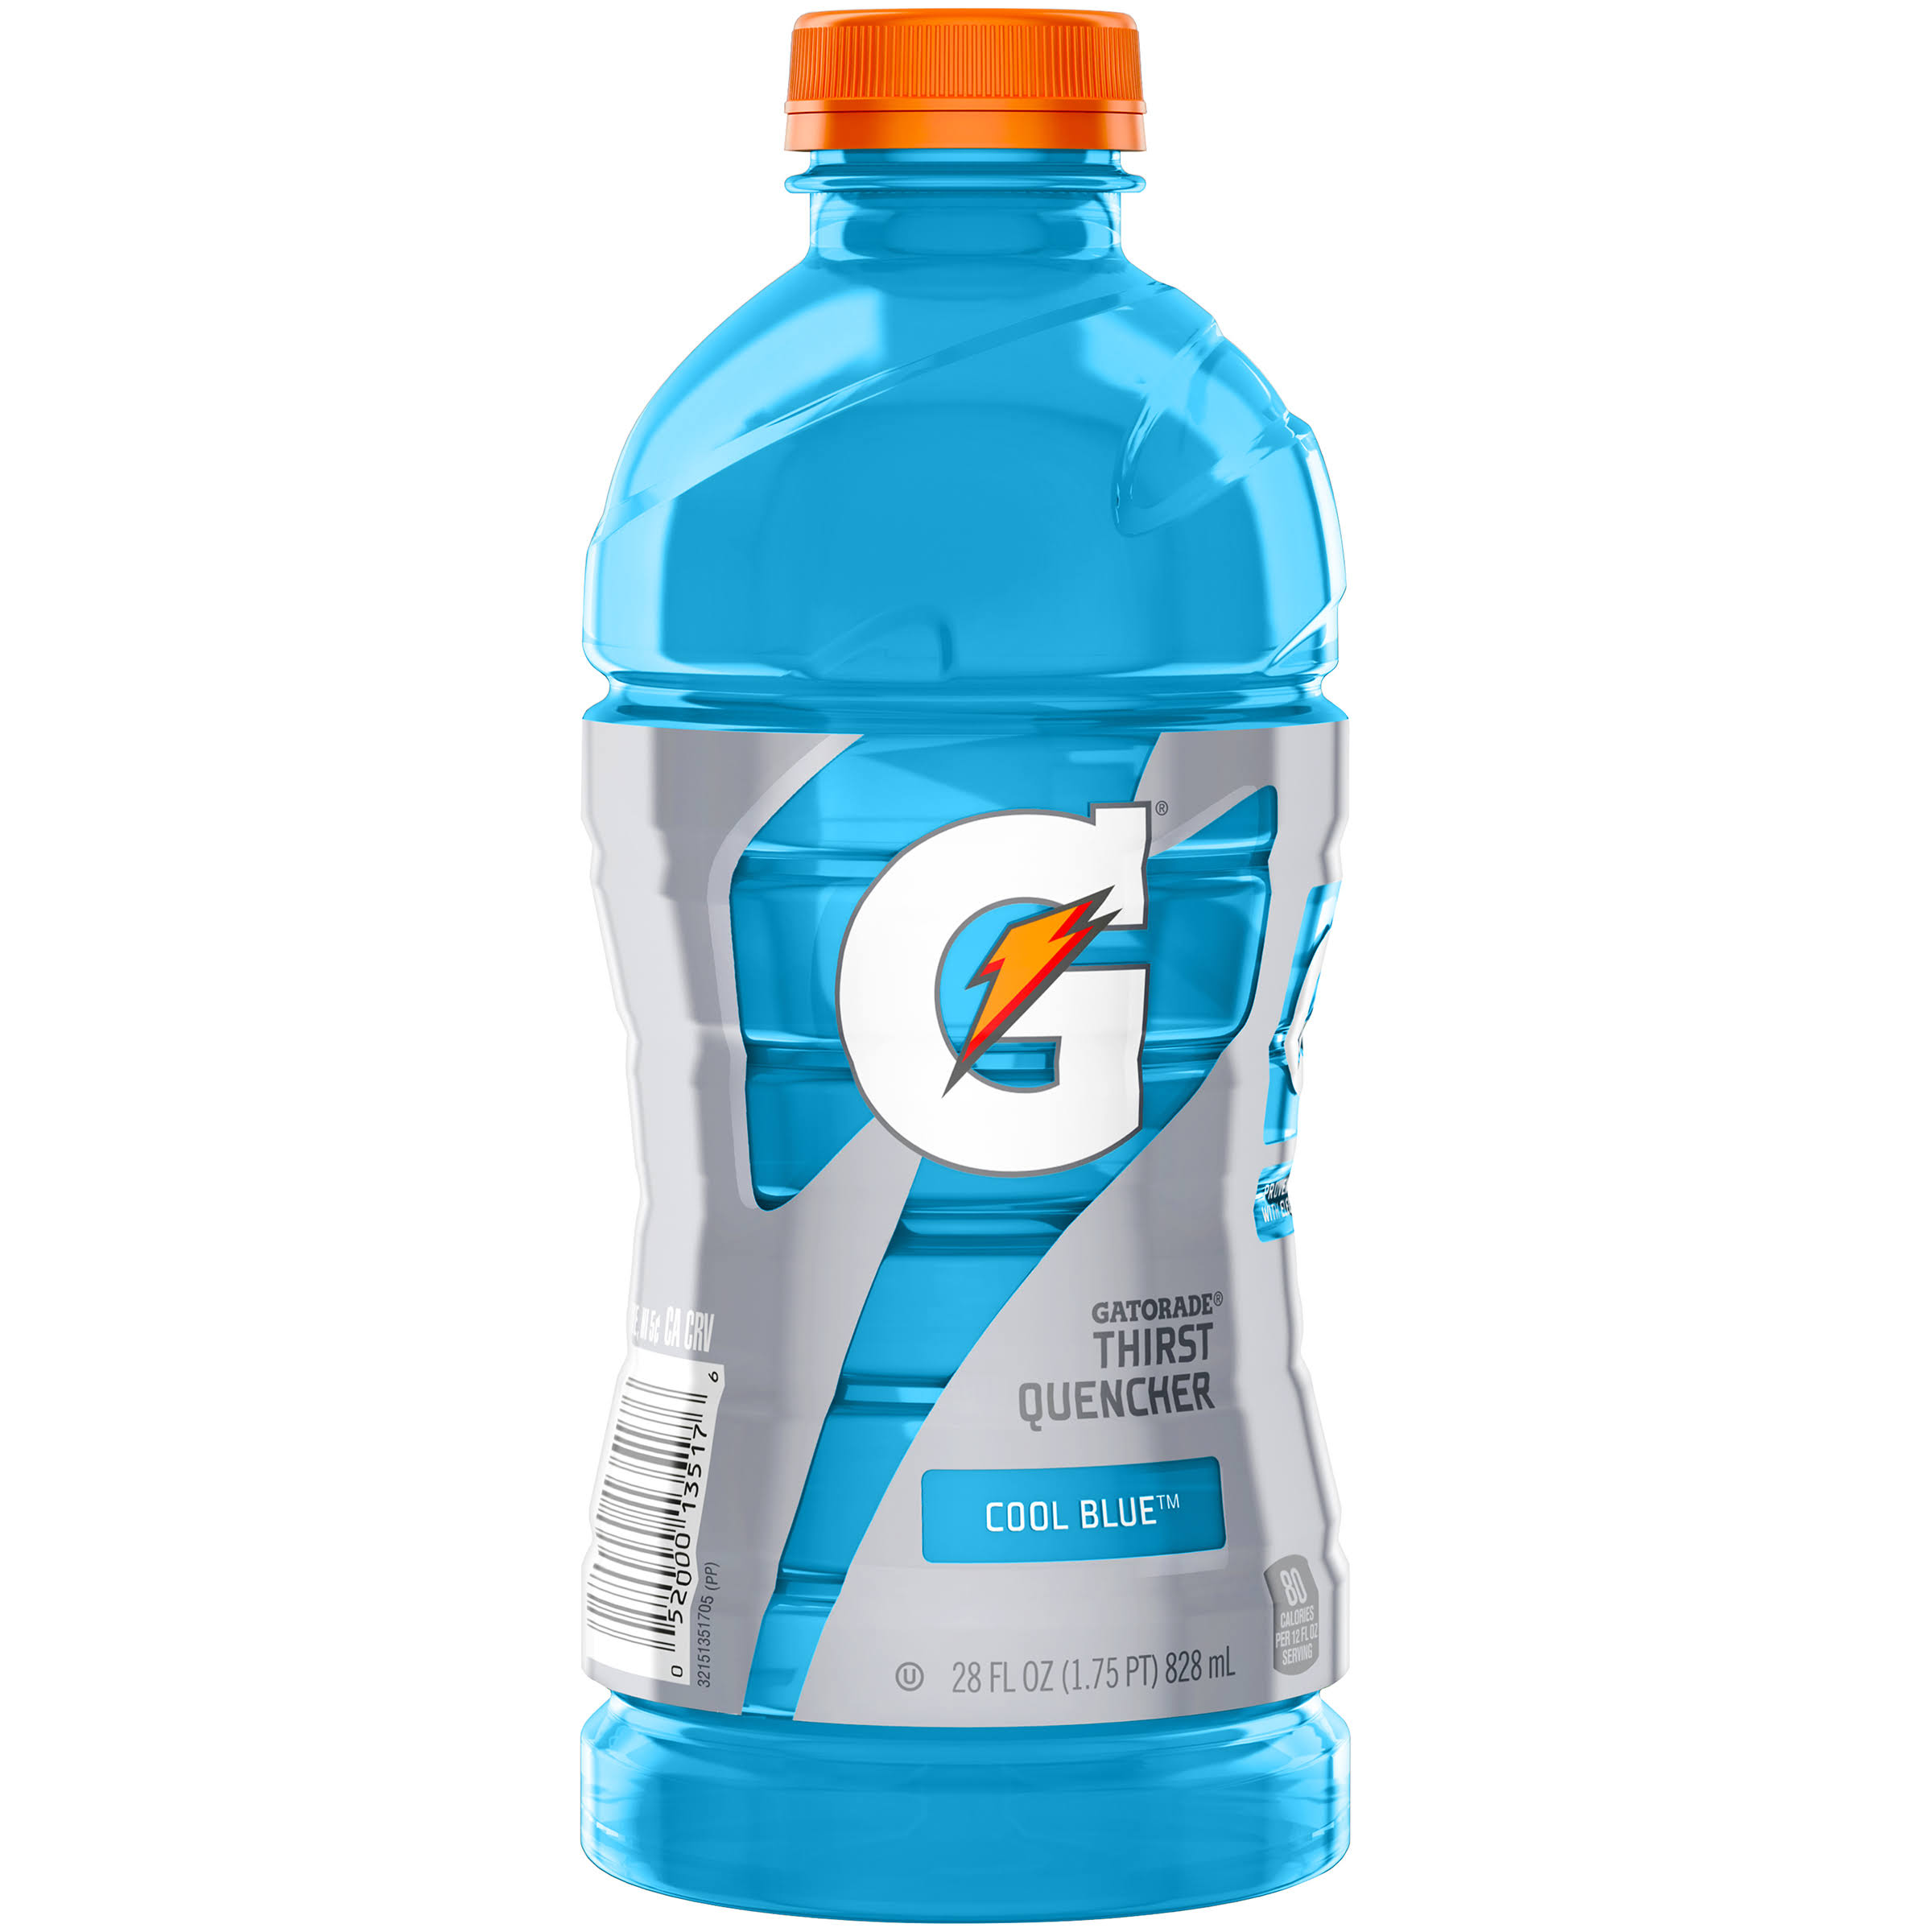 Gatorade G Series Thirst Quencher, Cool Blue - 28 fl oz